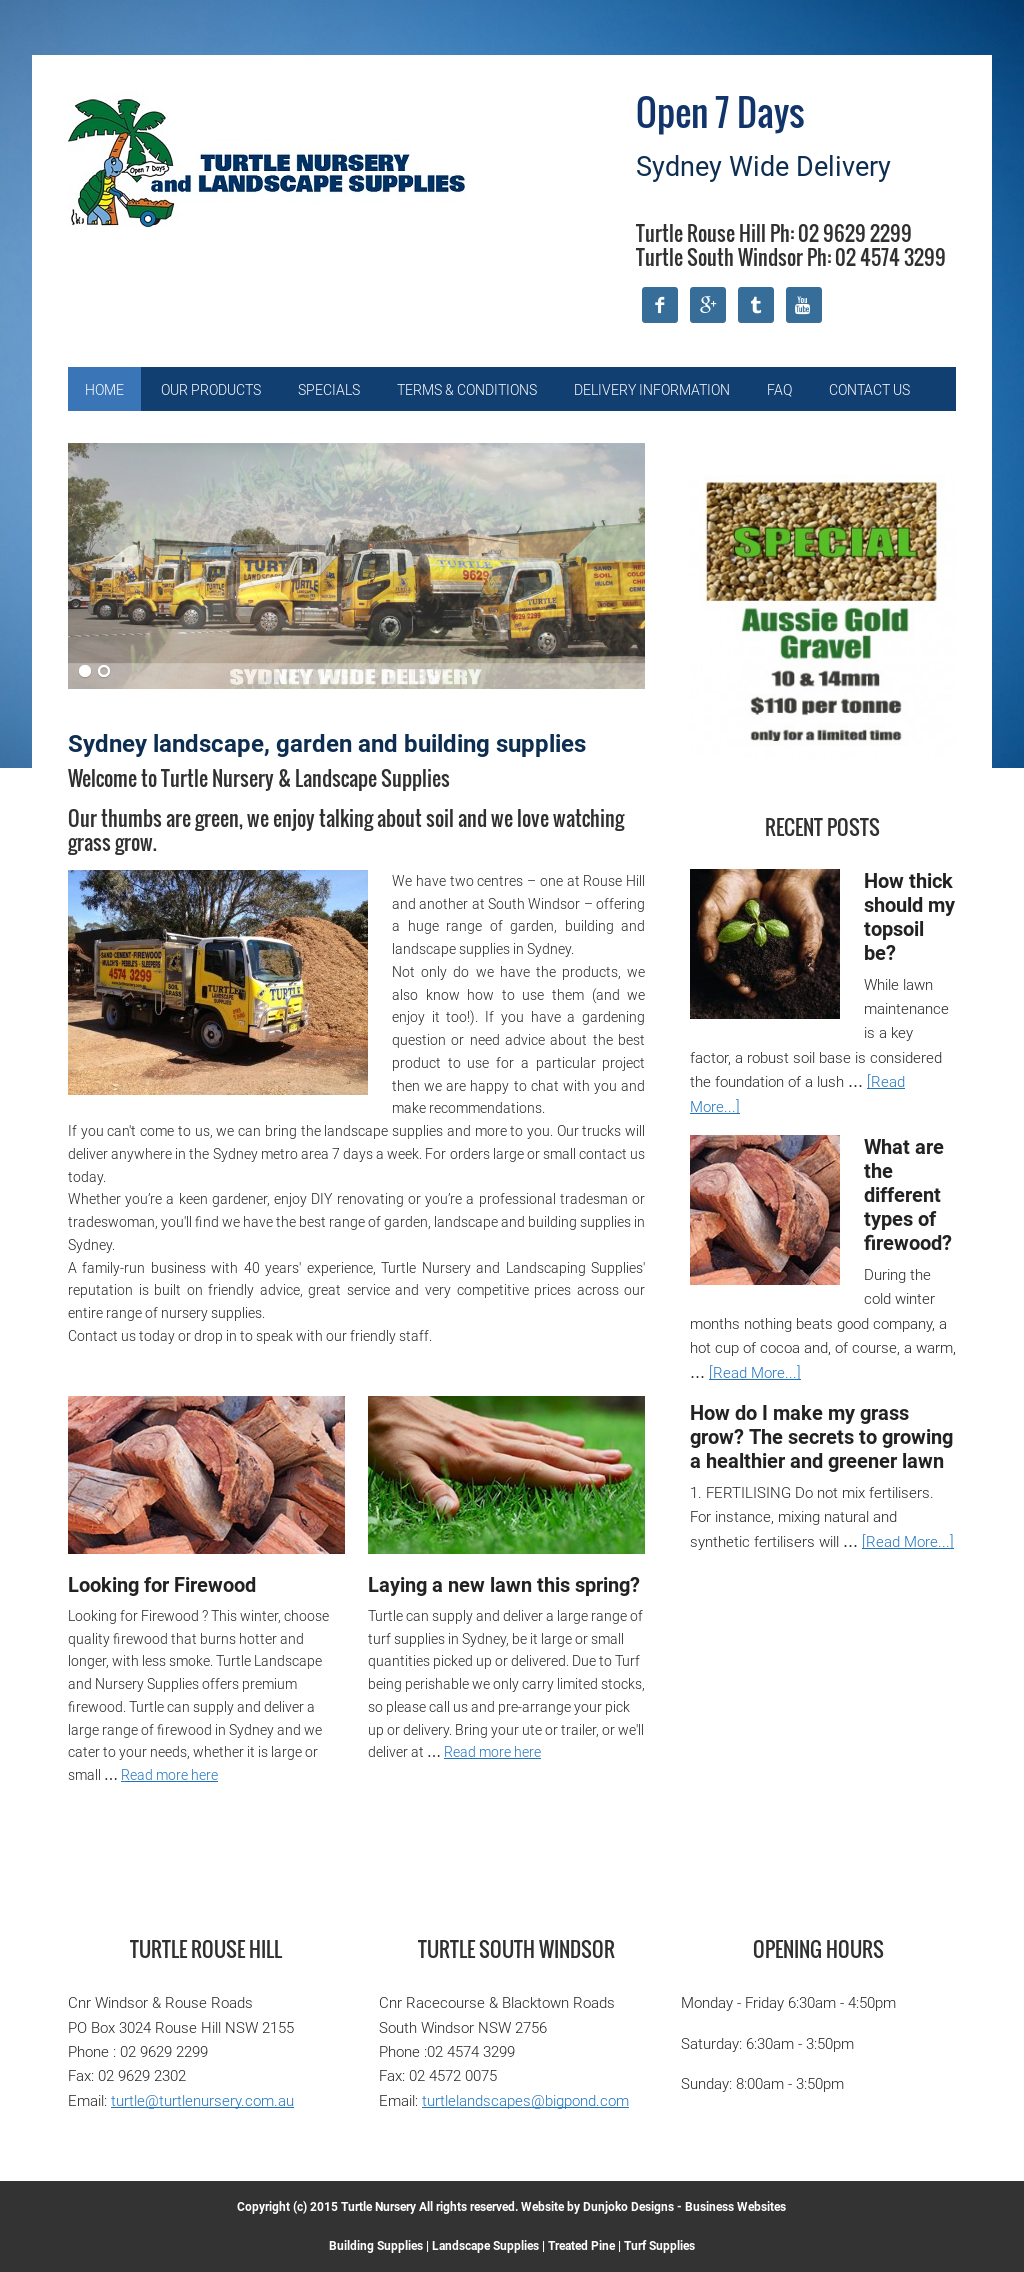 Turtle Landscape Supplies S Competitors Revenue Number Of Employees Funding Acquisitions News Owler Company Profile